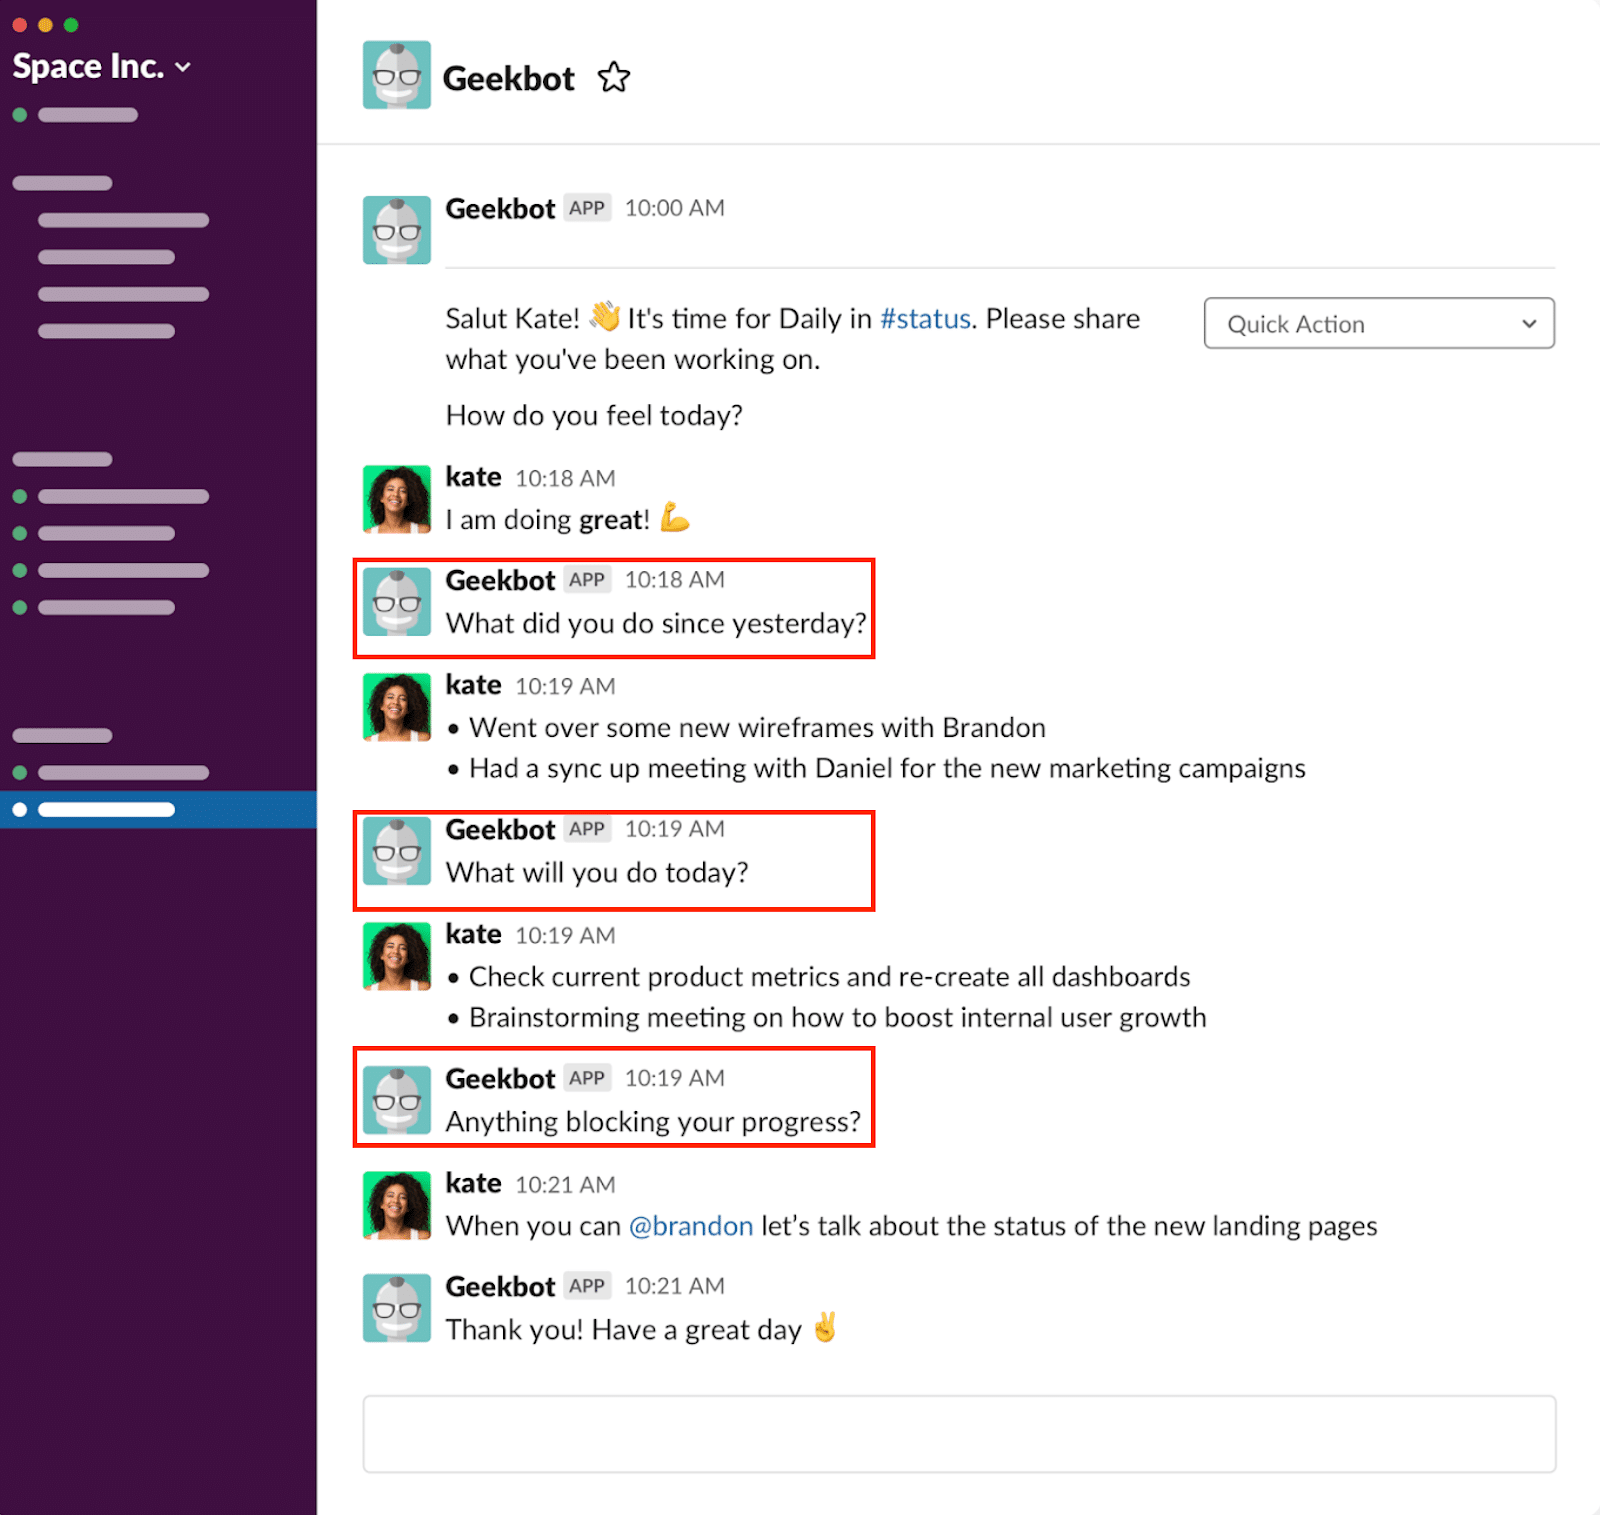 Geekbot within Slack: What did you do since yesterday? What will you do today? Anything blocking your progress?